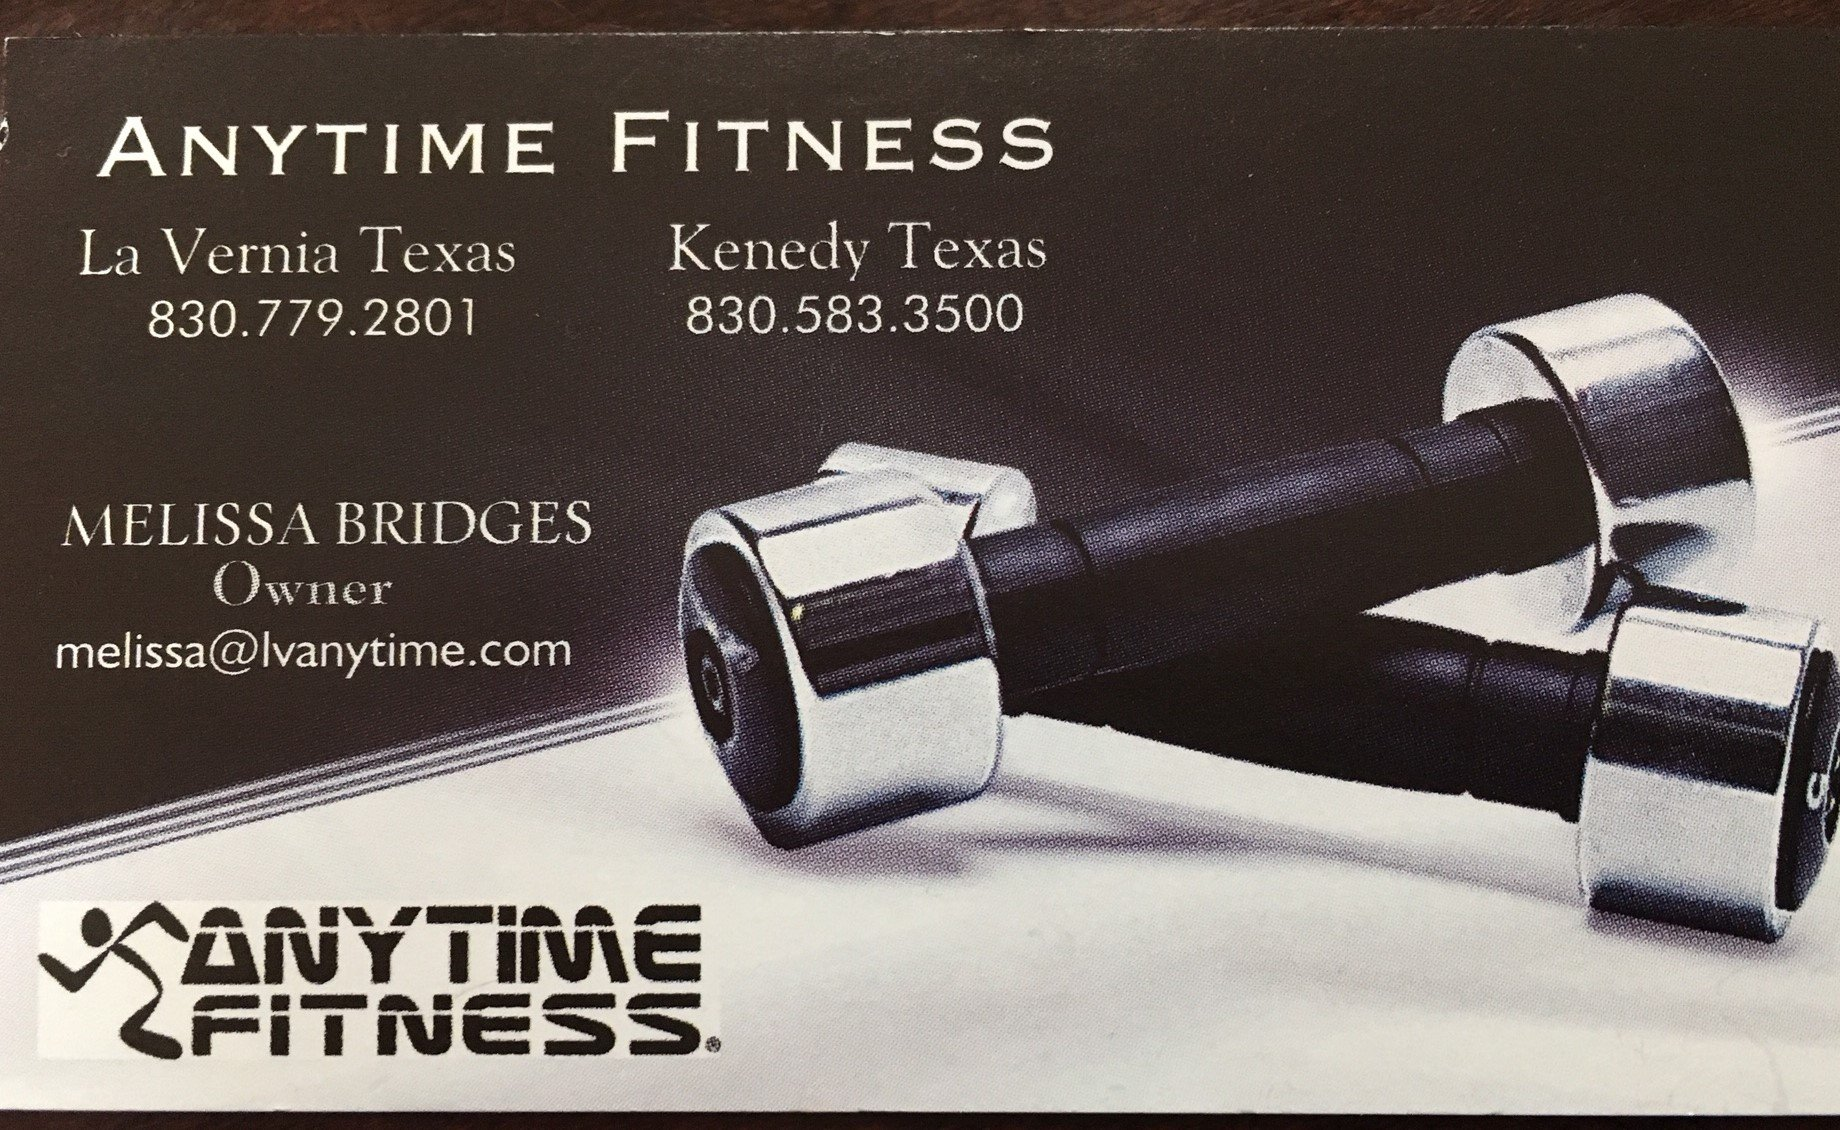 Anytime Fitness 131 Business Park Dr. Kenedy, TX 78119 830 583-3500